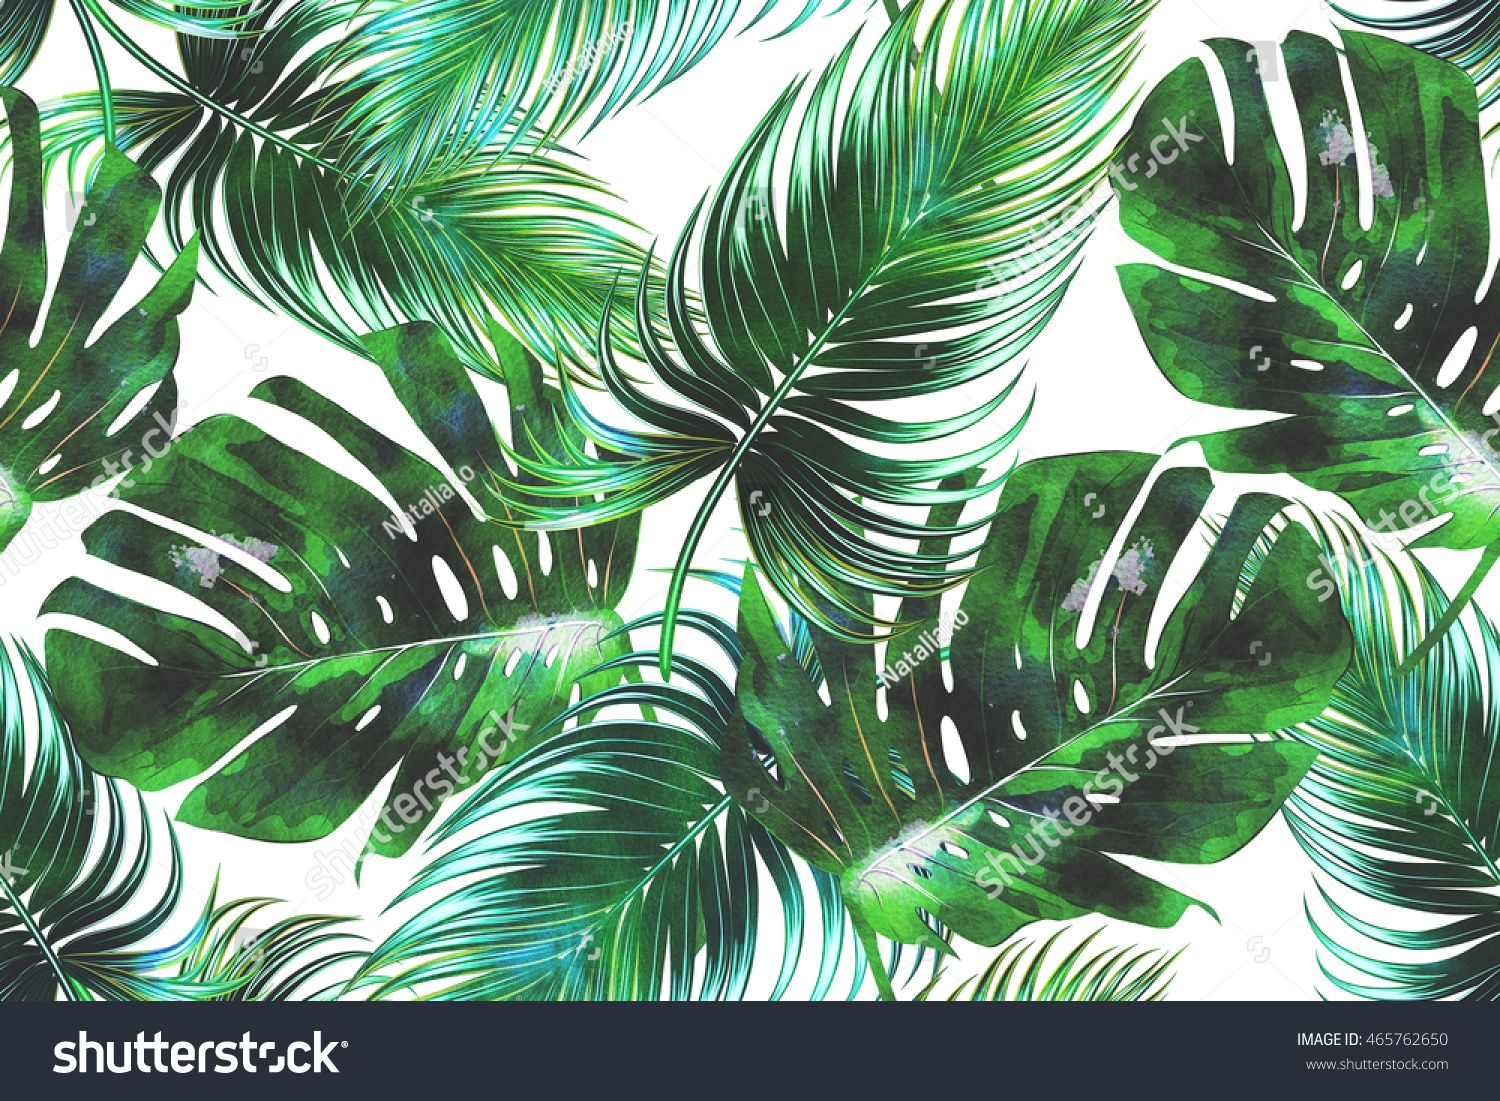 Tropical Palm Leaves Jungle Seamless Watercolor Floral Pattern